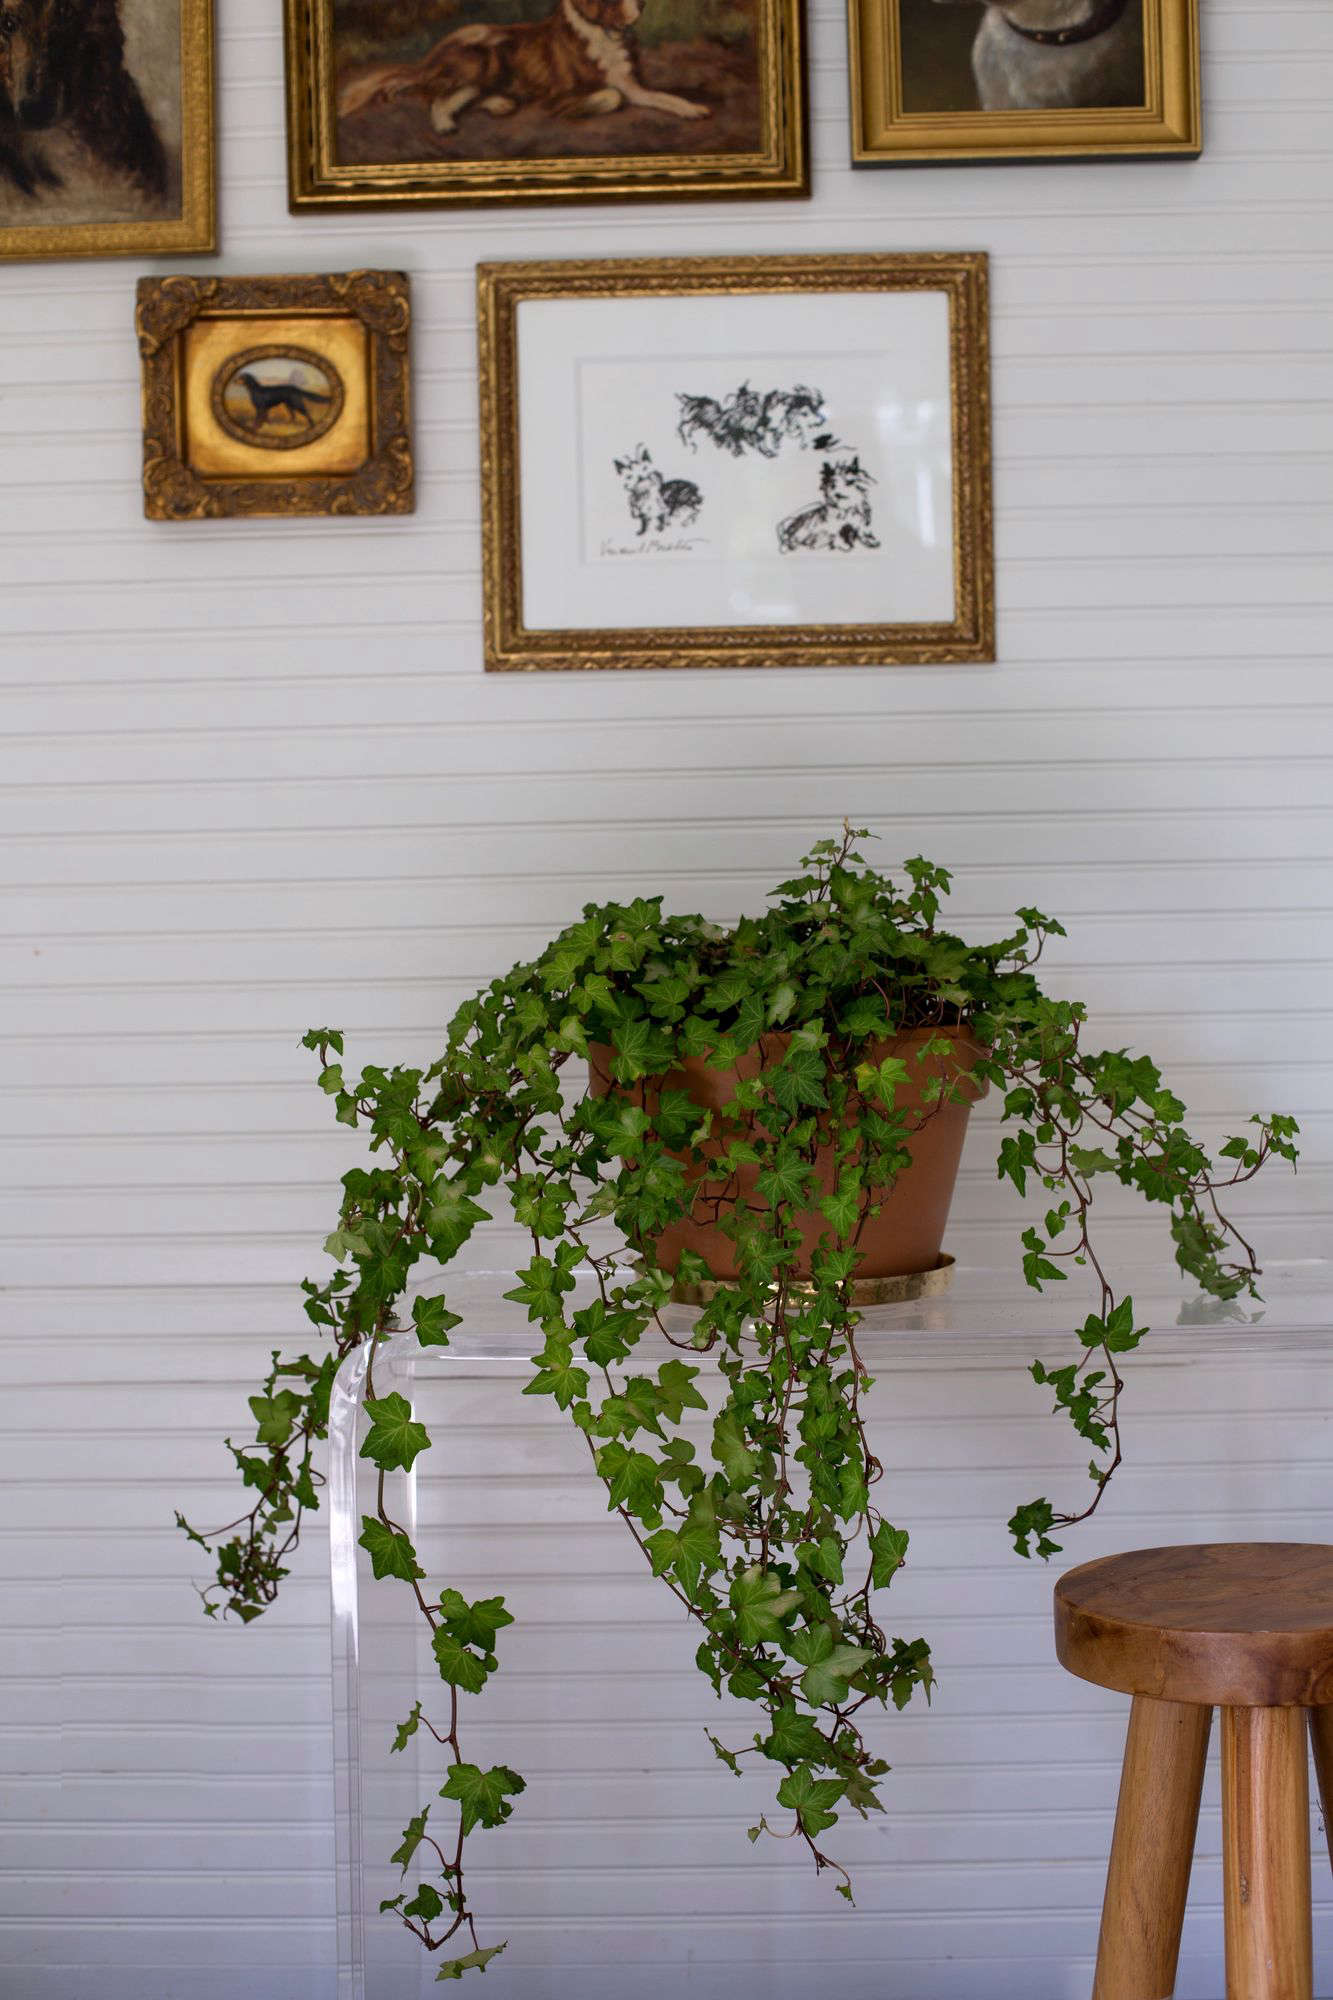 English Ivy is will tolerate low light. See more inBest Houseplants: 9 Indoor Plants for Low Light. Photograph by Mimi Giboin.